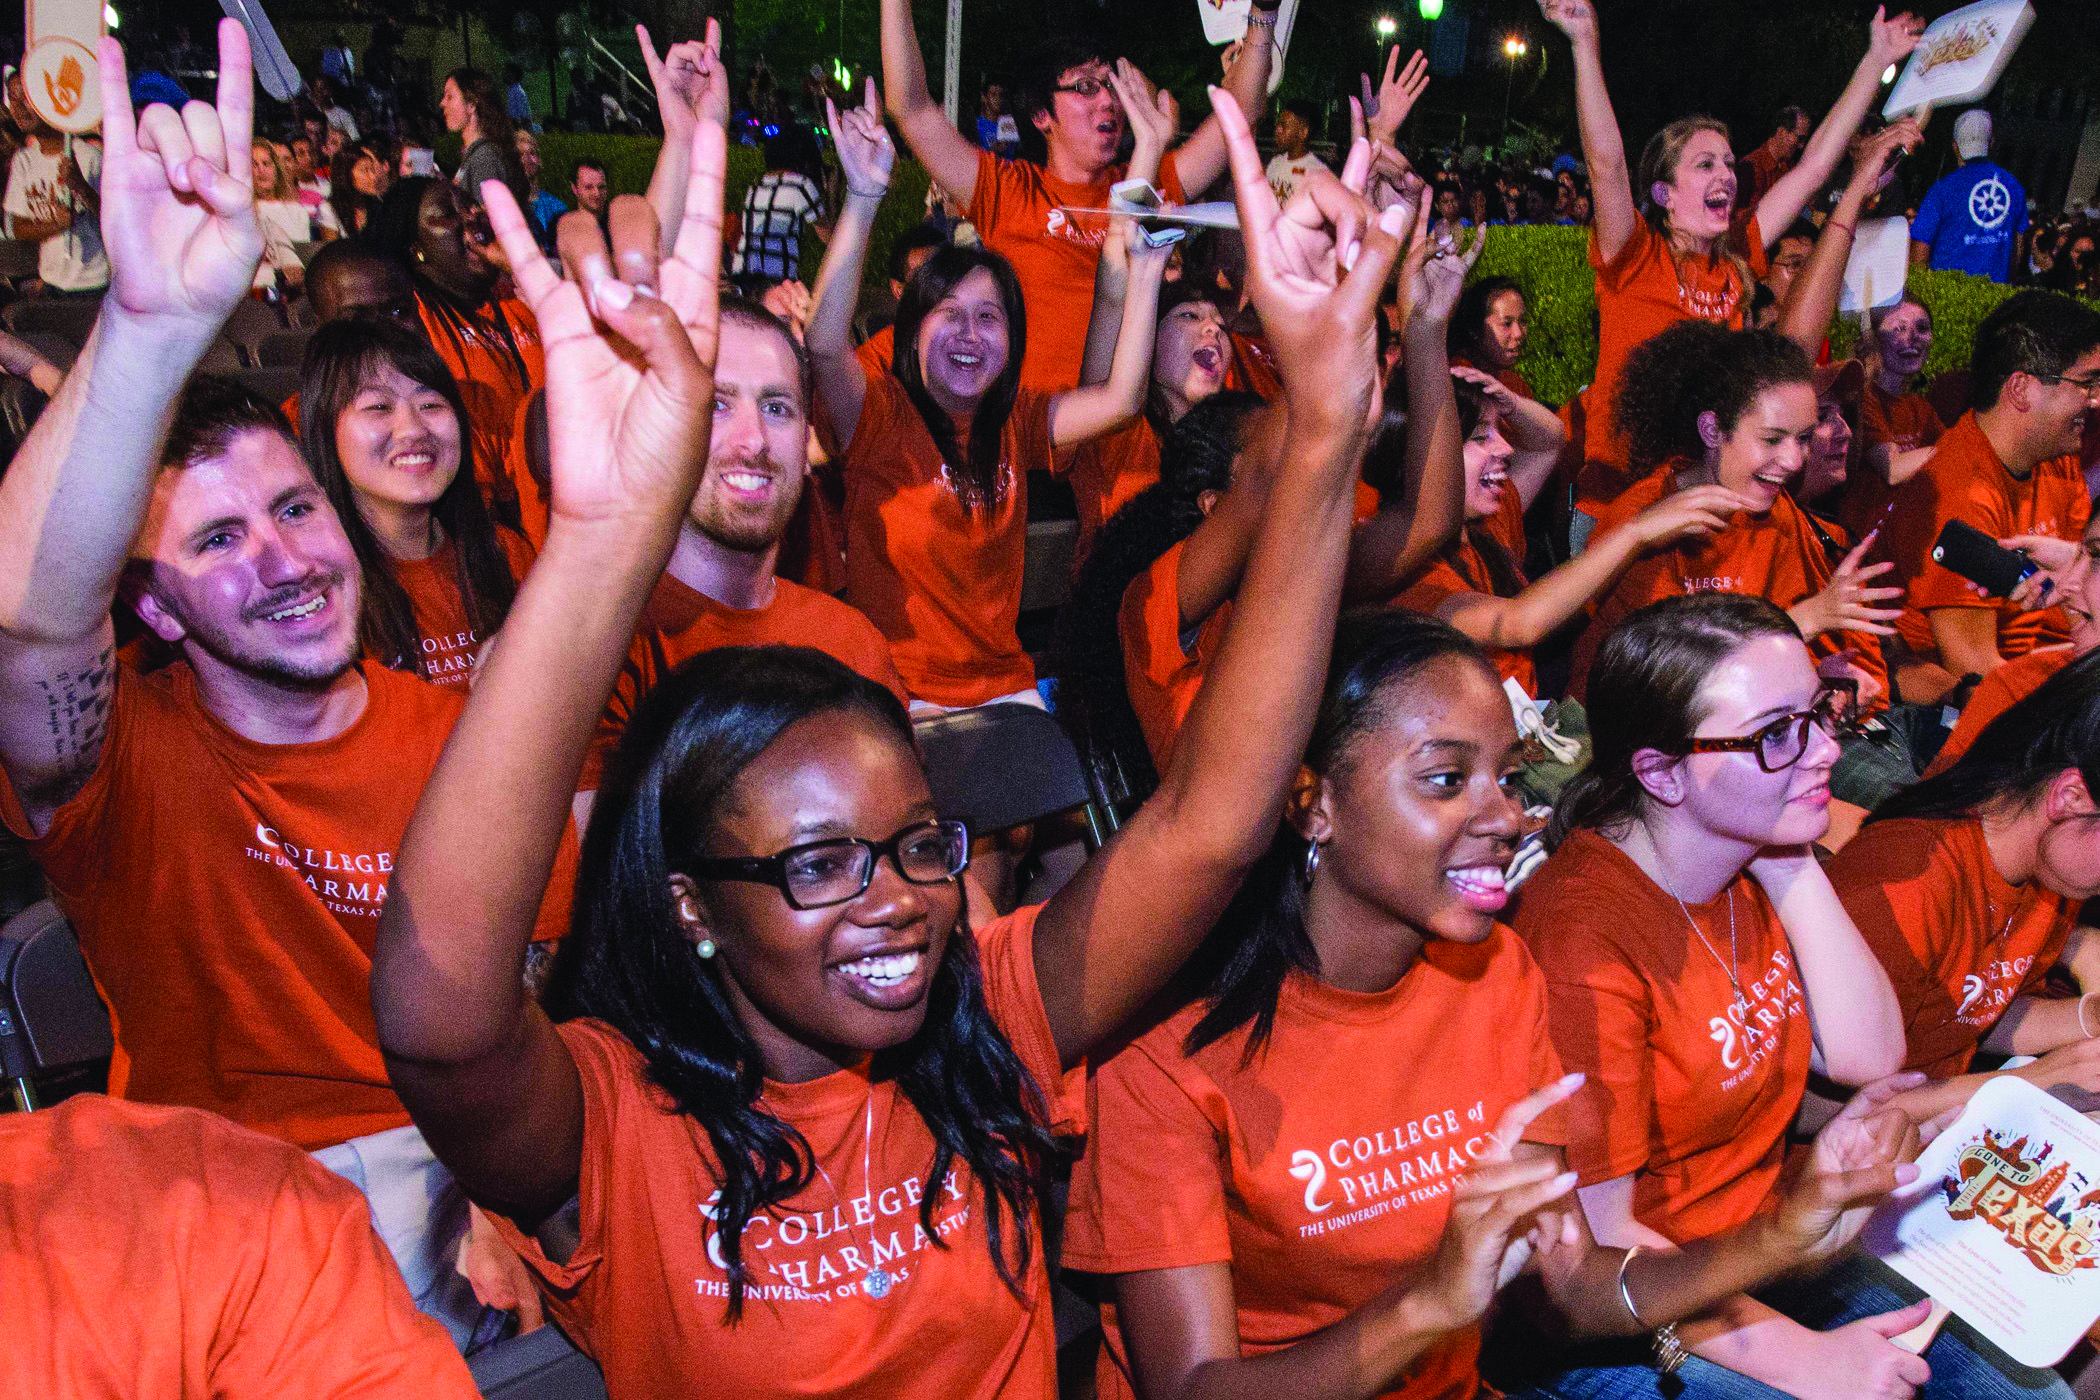 Free Courses for Racial Awareness and Healing at The University of Texas at Austin